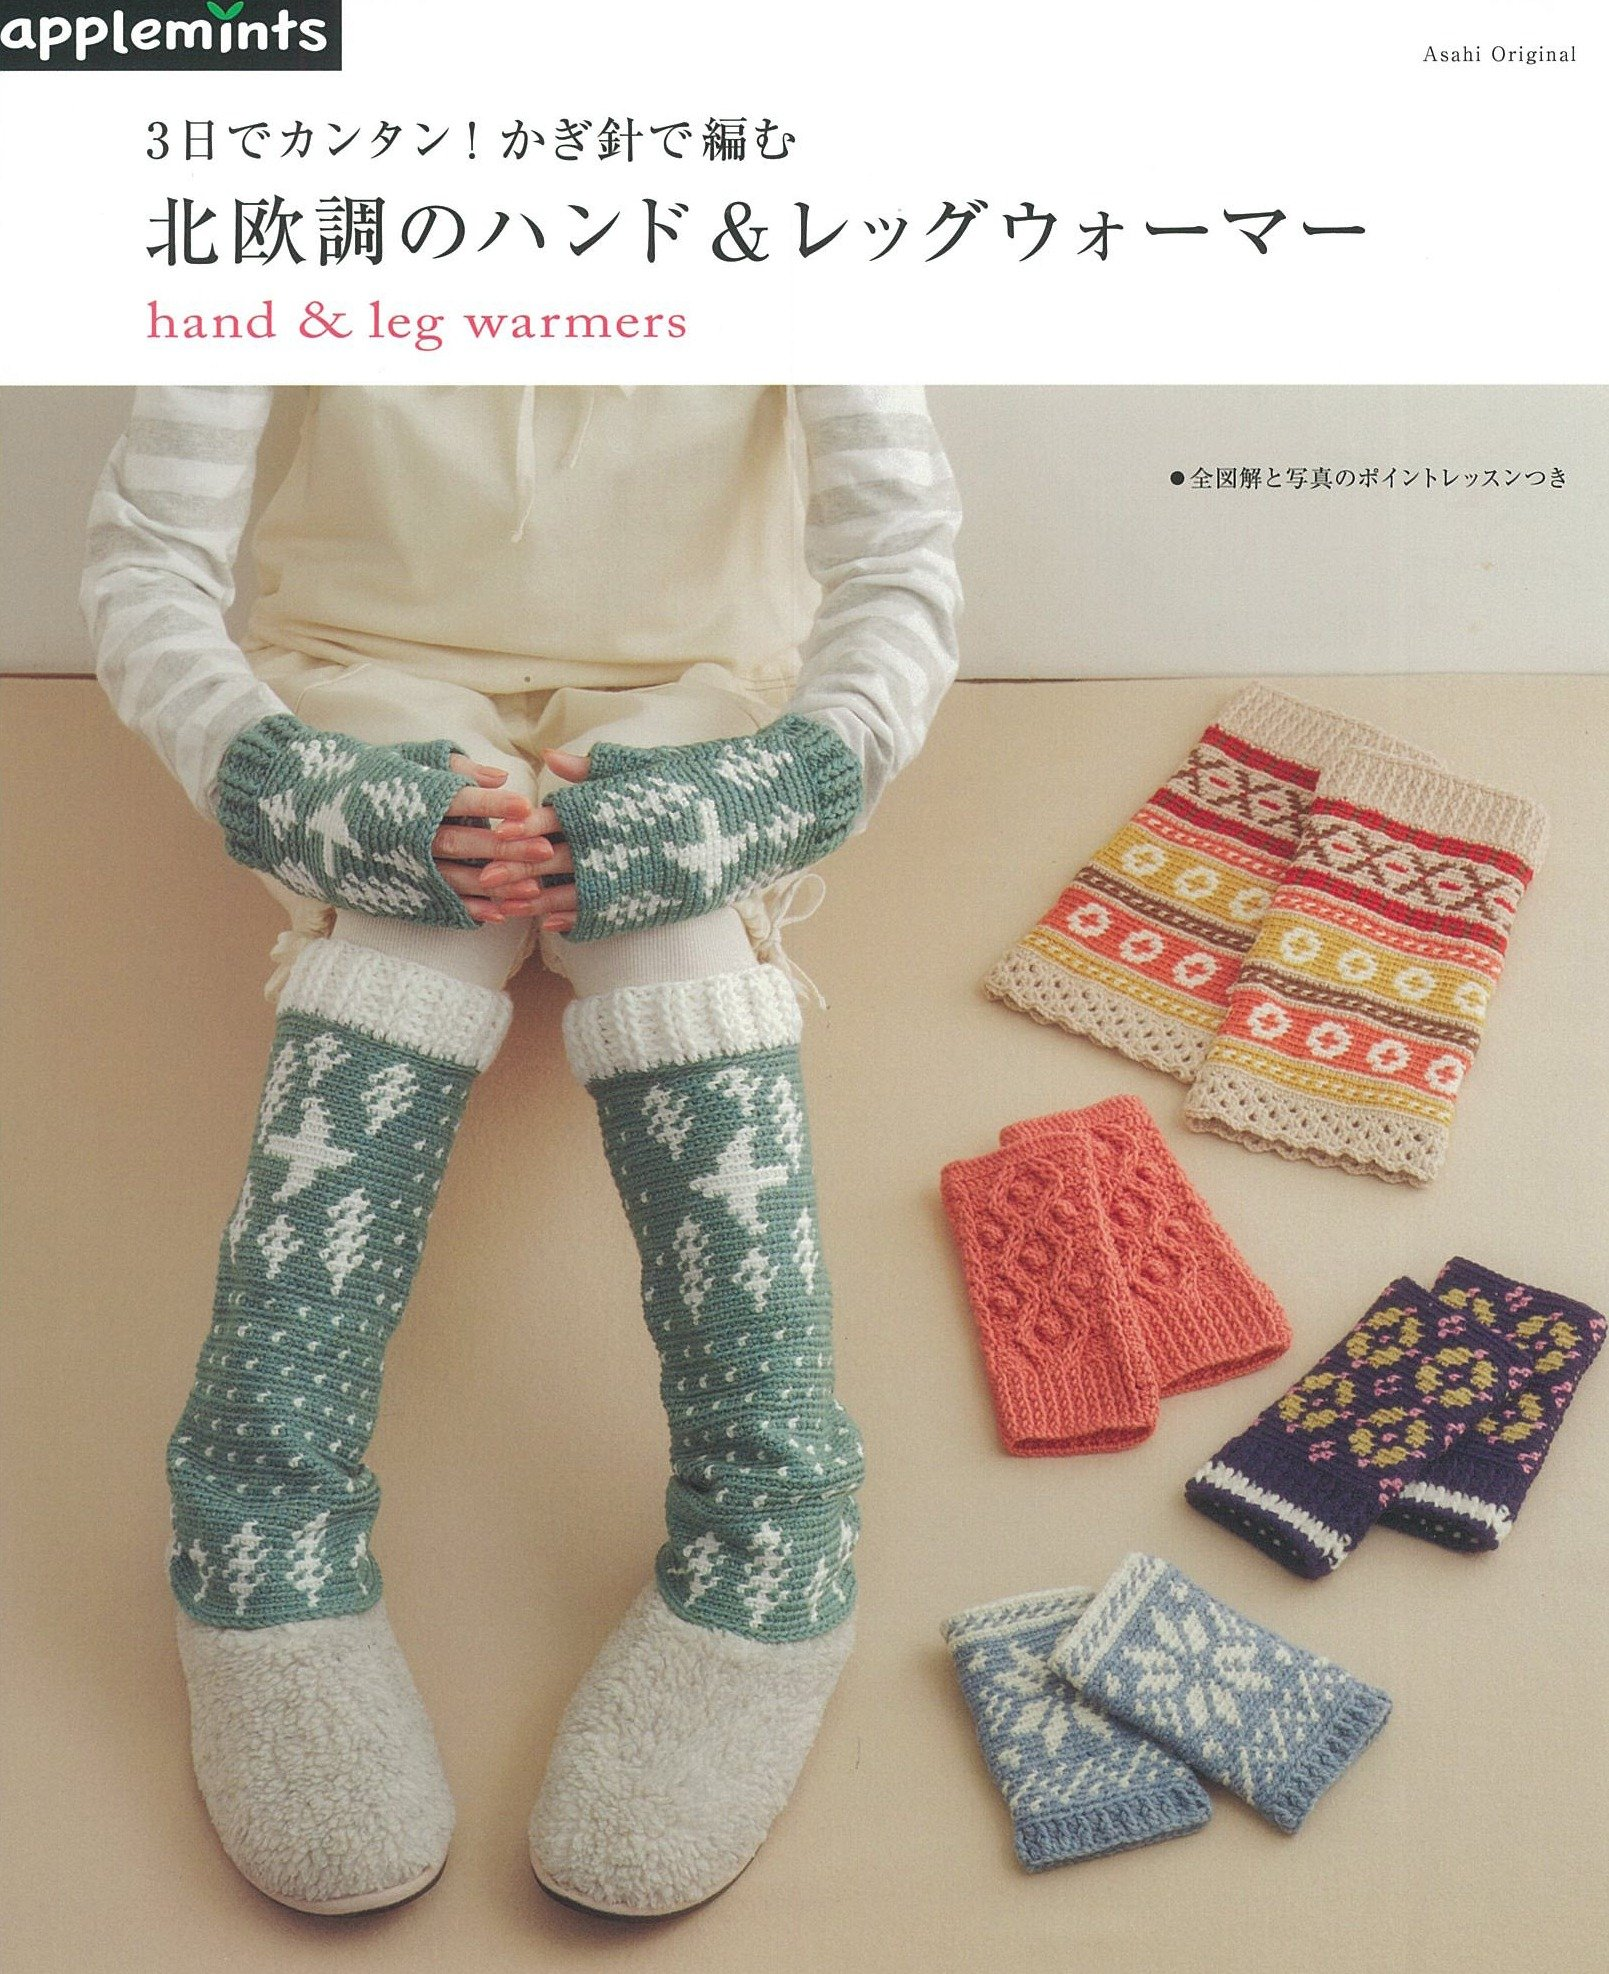 Knitting three days with easy Crochet Hand & Leg Warmers